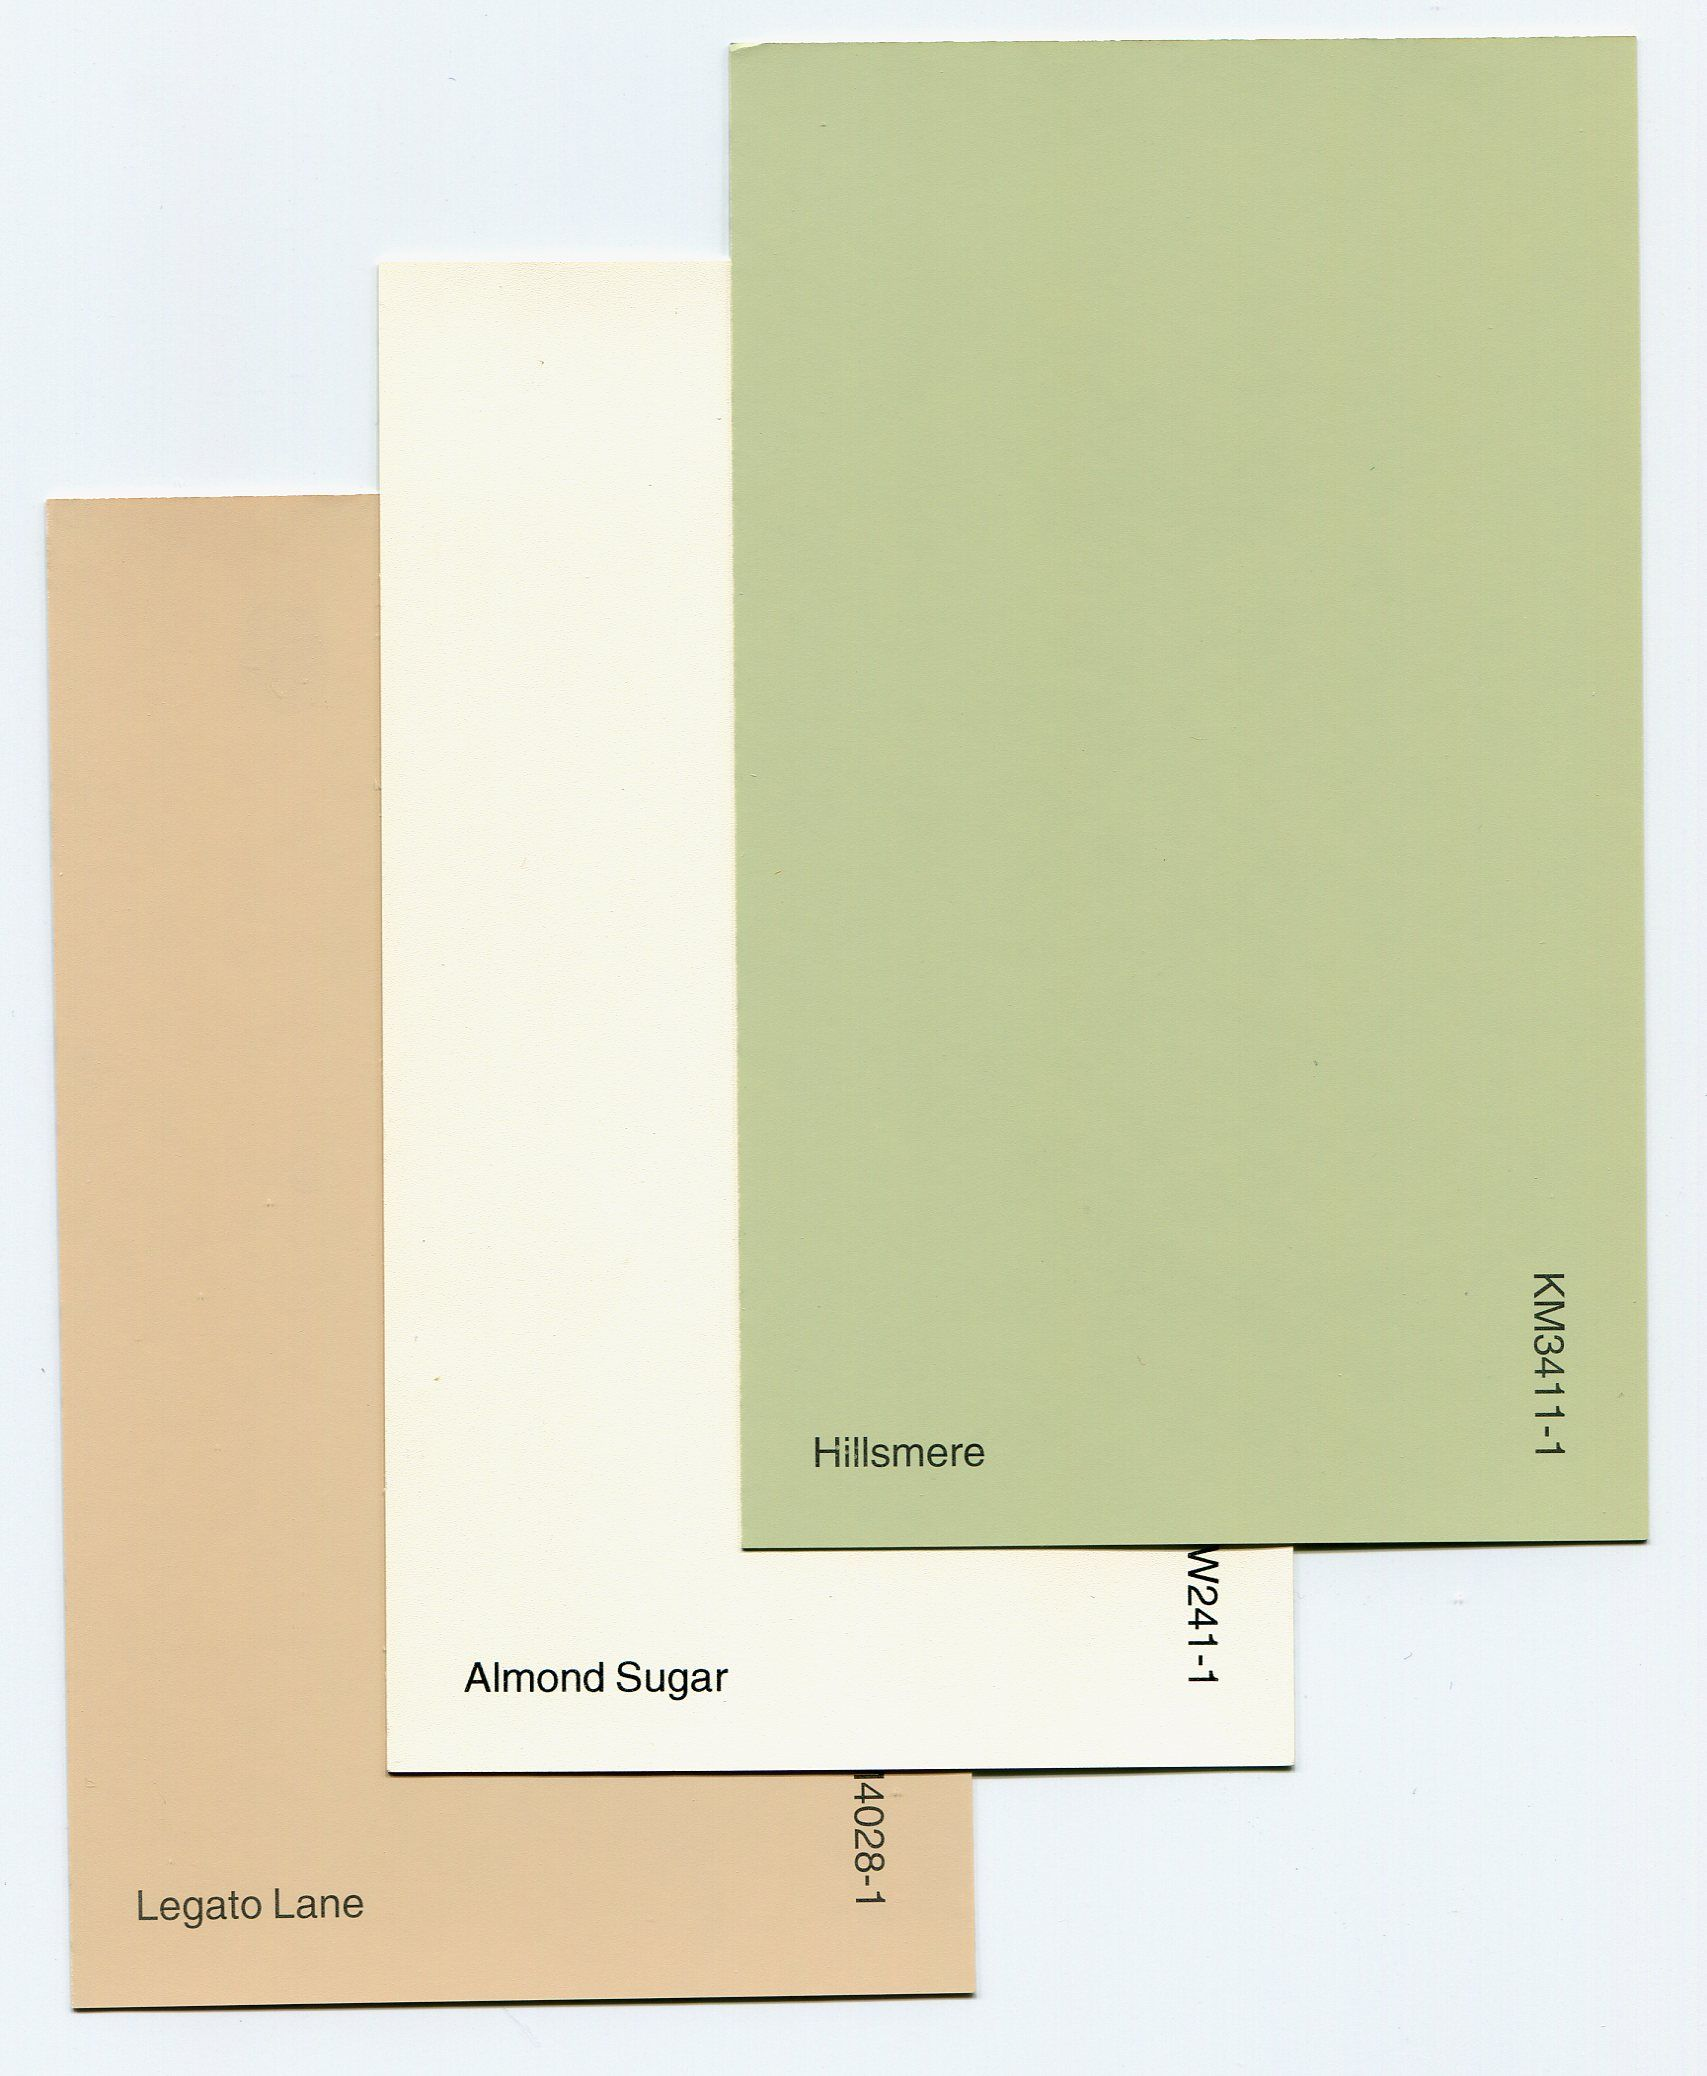 Accent Colors For Sage Green Accent Colors For Sage Green - http:--foto.birdiebusch.com-